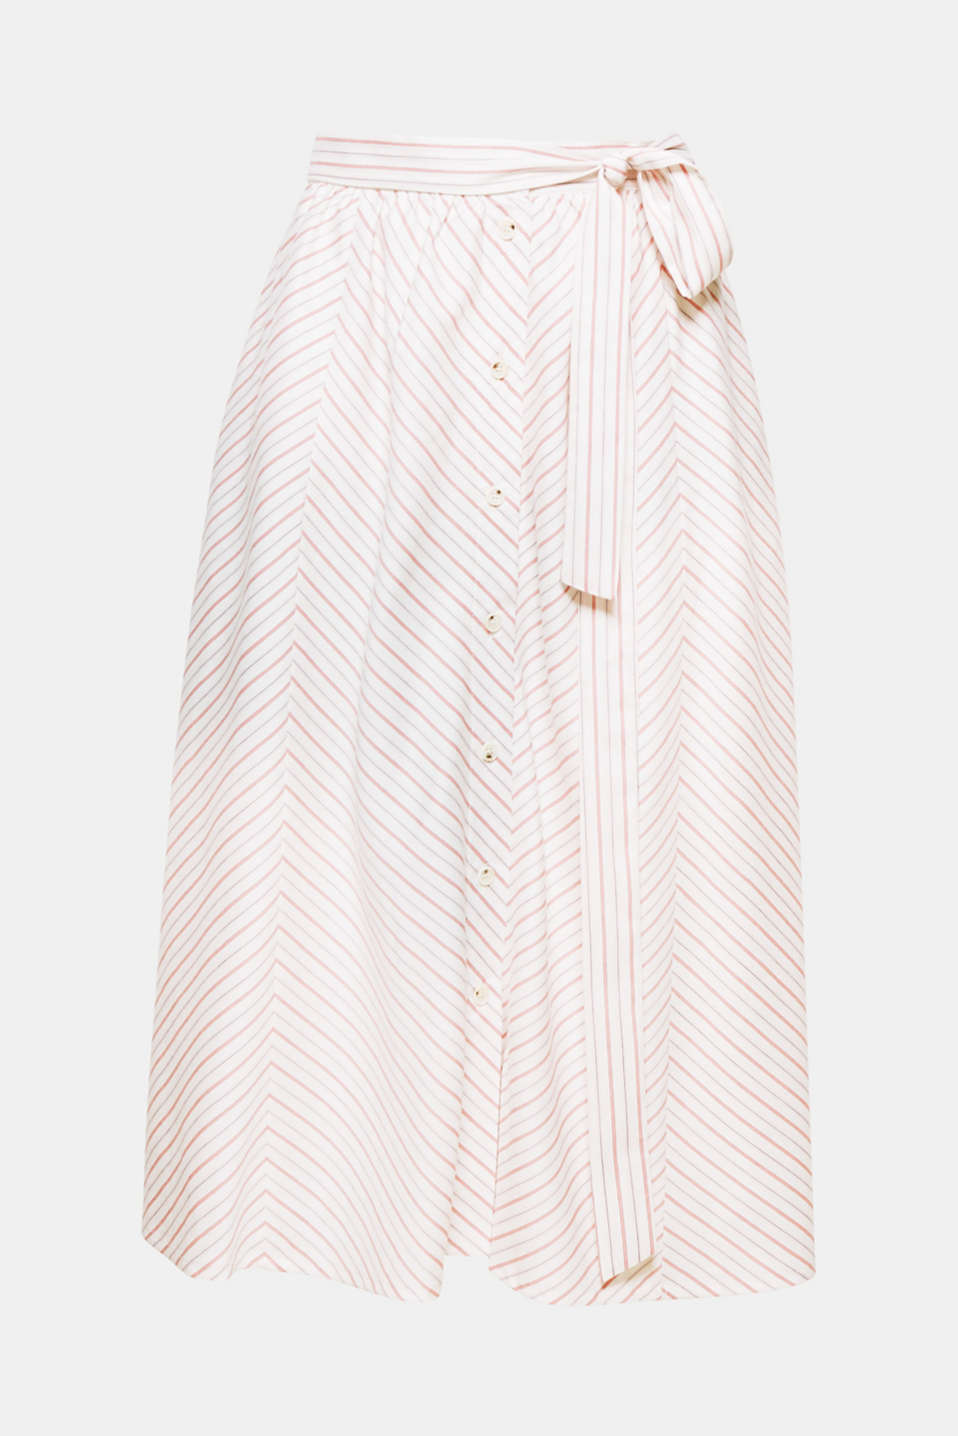 Modern style with retro charm: this swirling midi skirt with a centre button placket, diagonal stripes and a tie-around belt is one of the trendiest styles this summer!